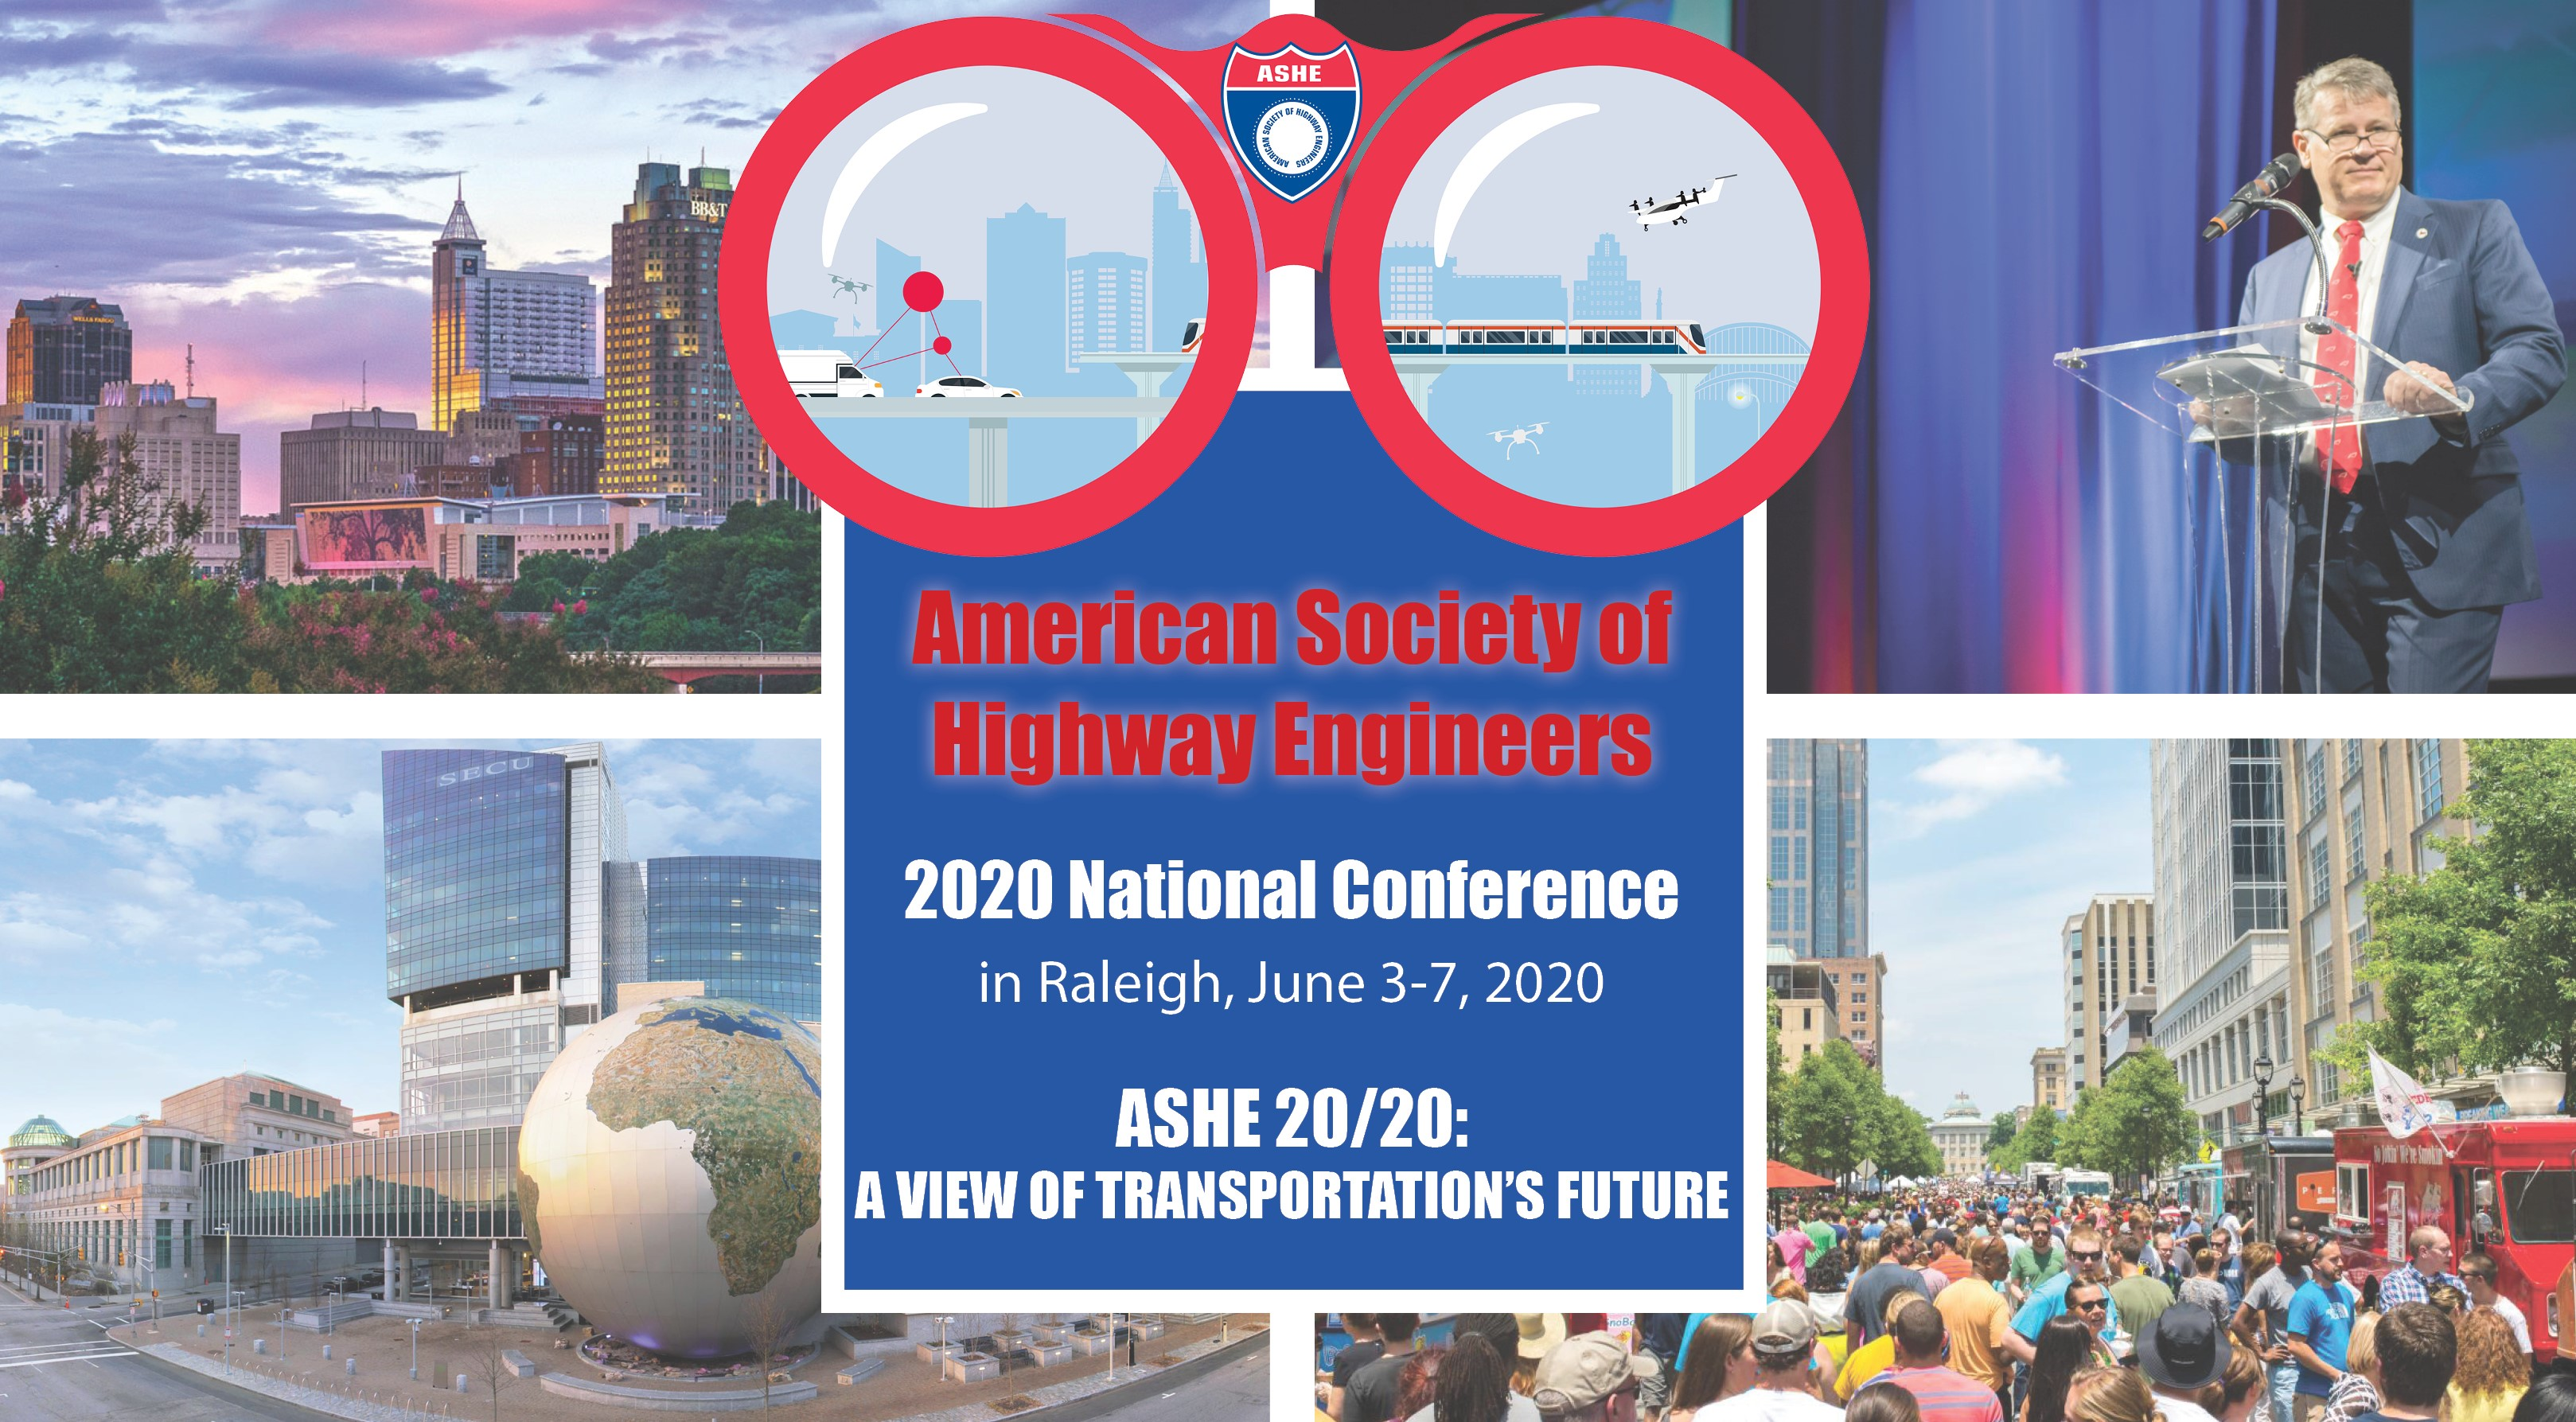 ASHE 2020 National Conference